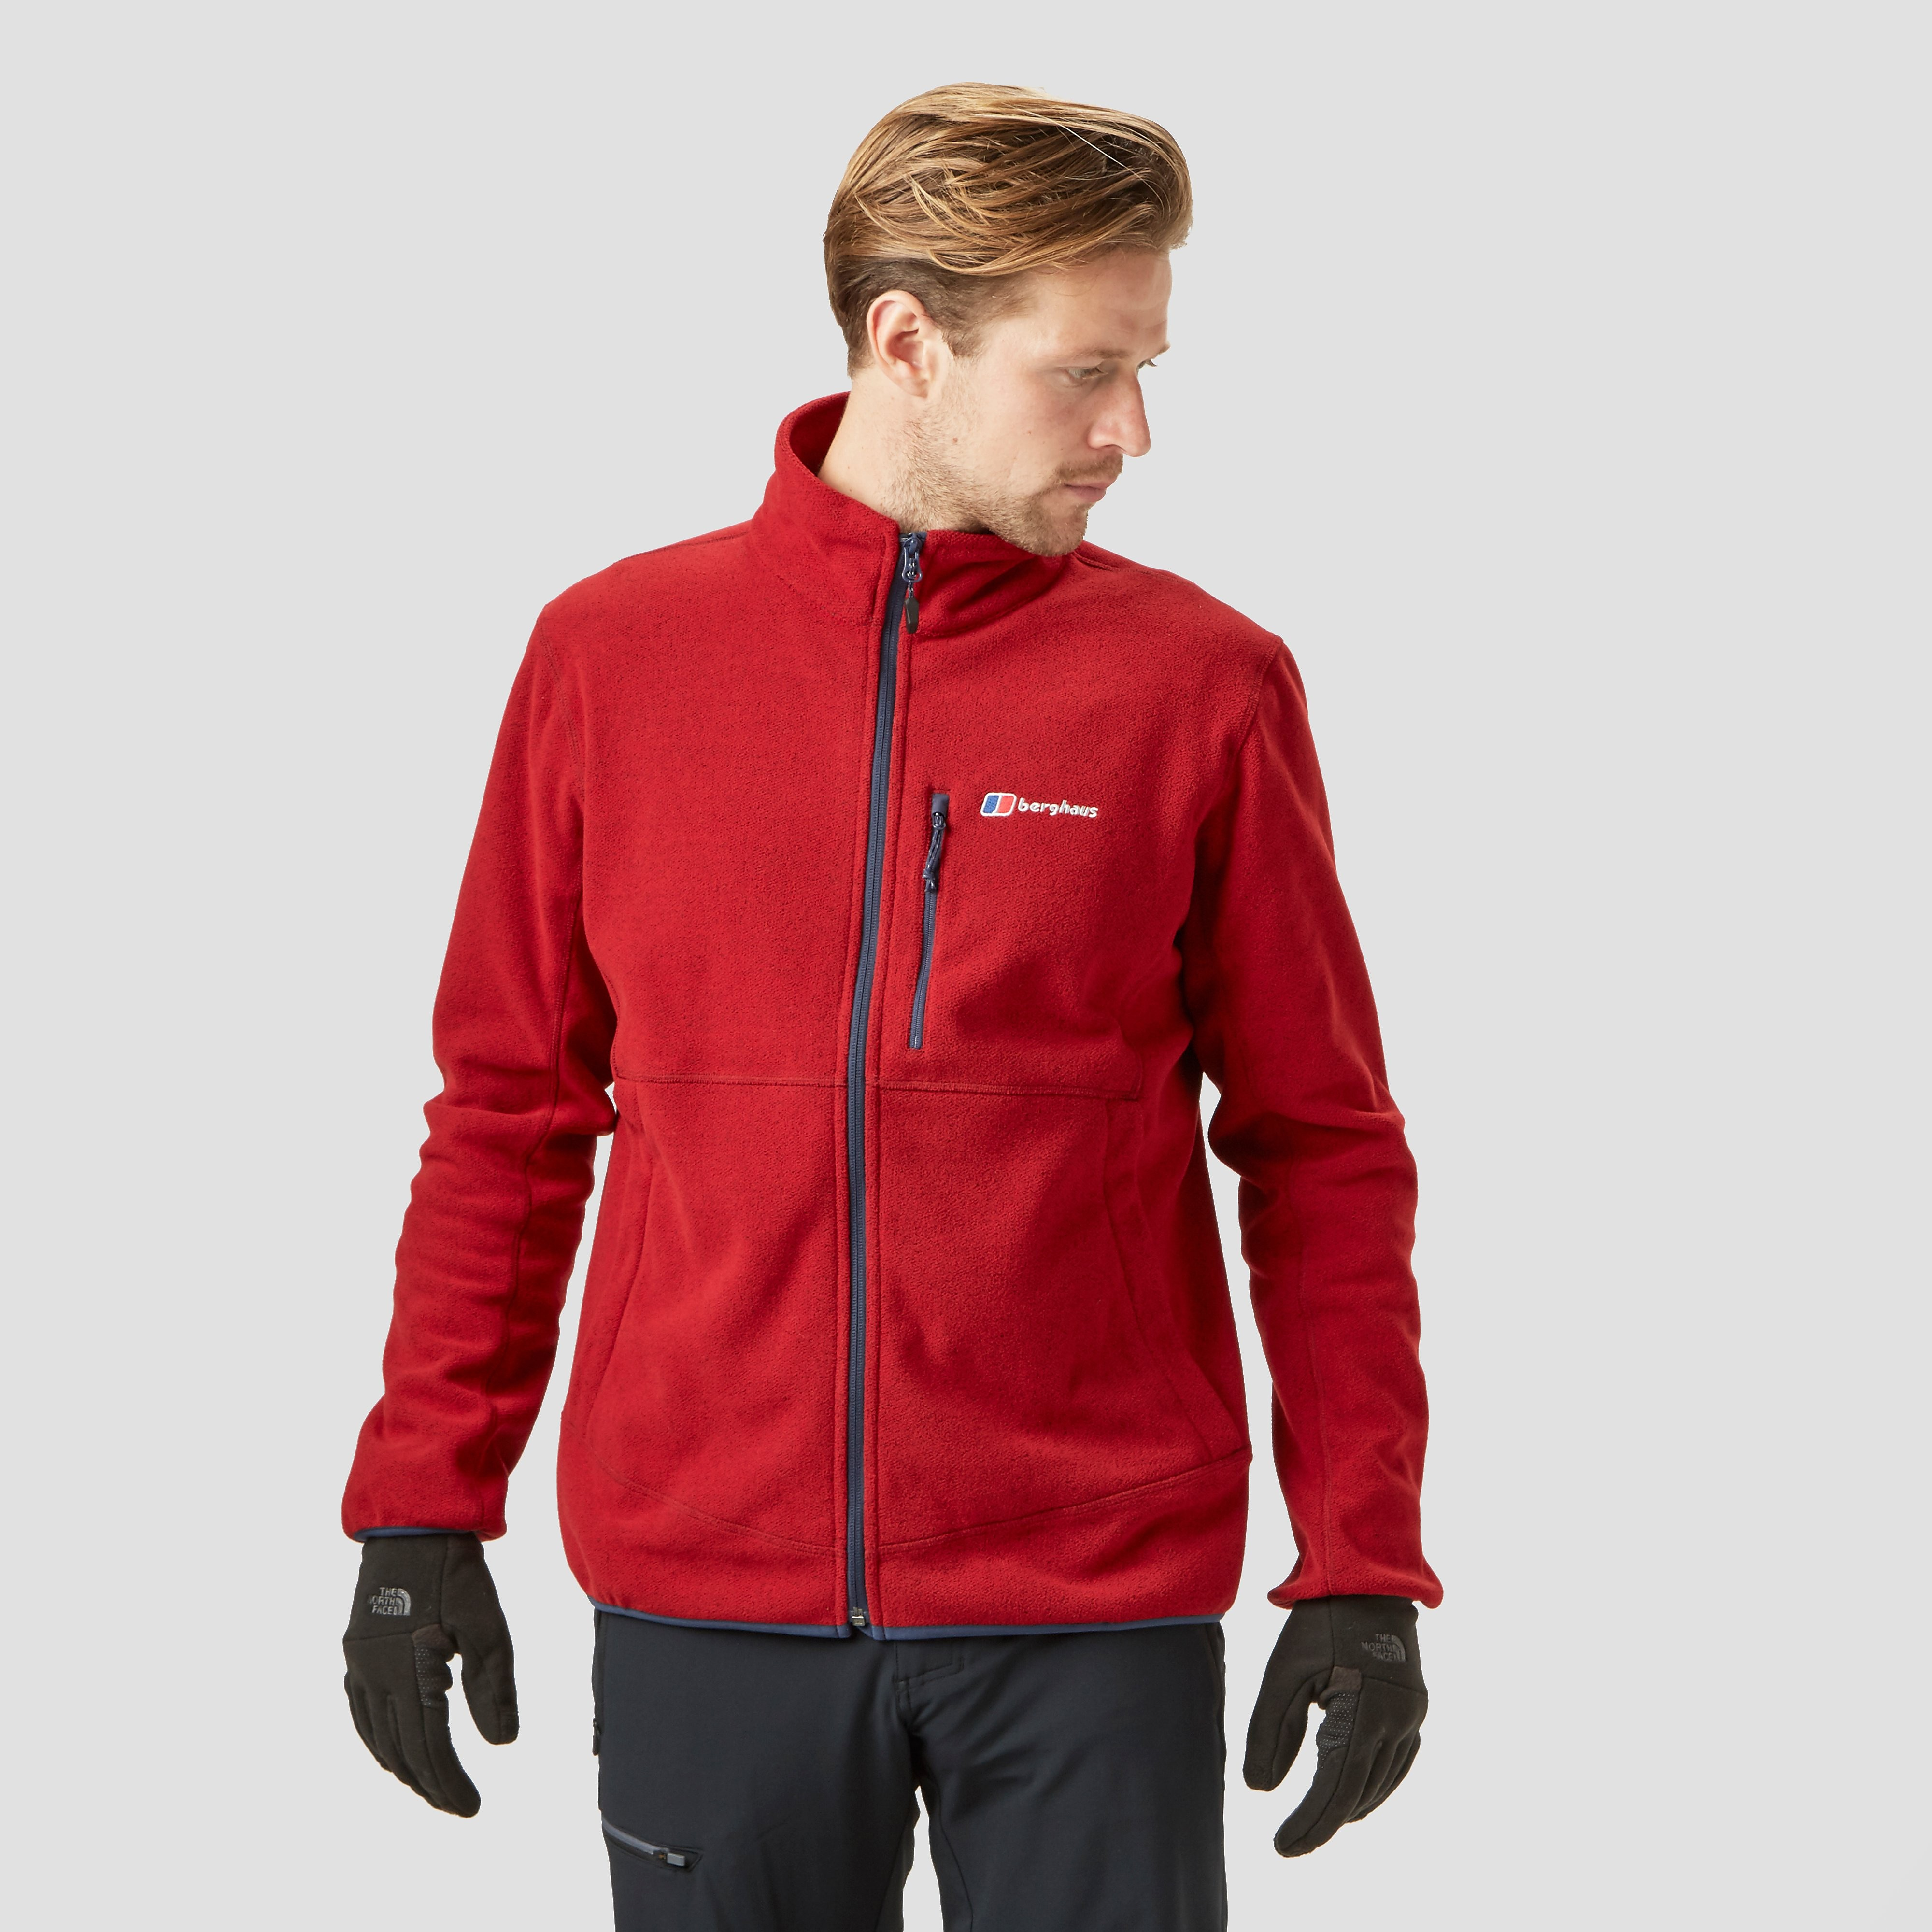 Berghaus Men's Fortrose Fleece Jacket